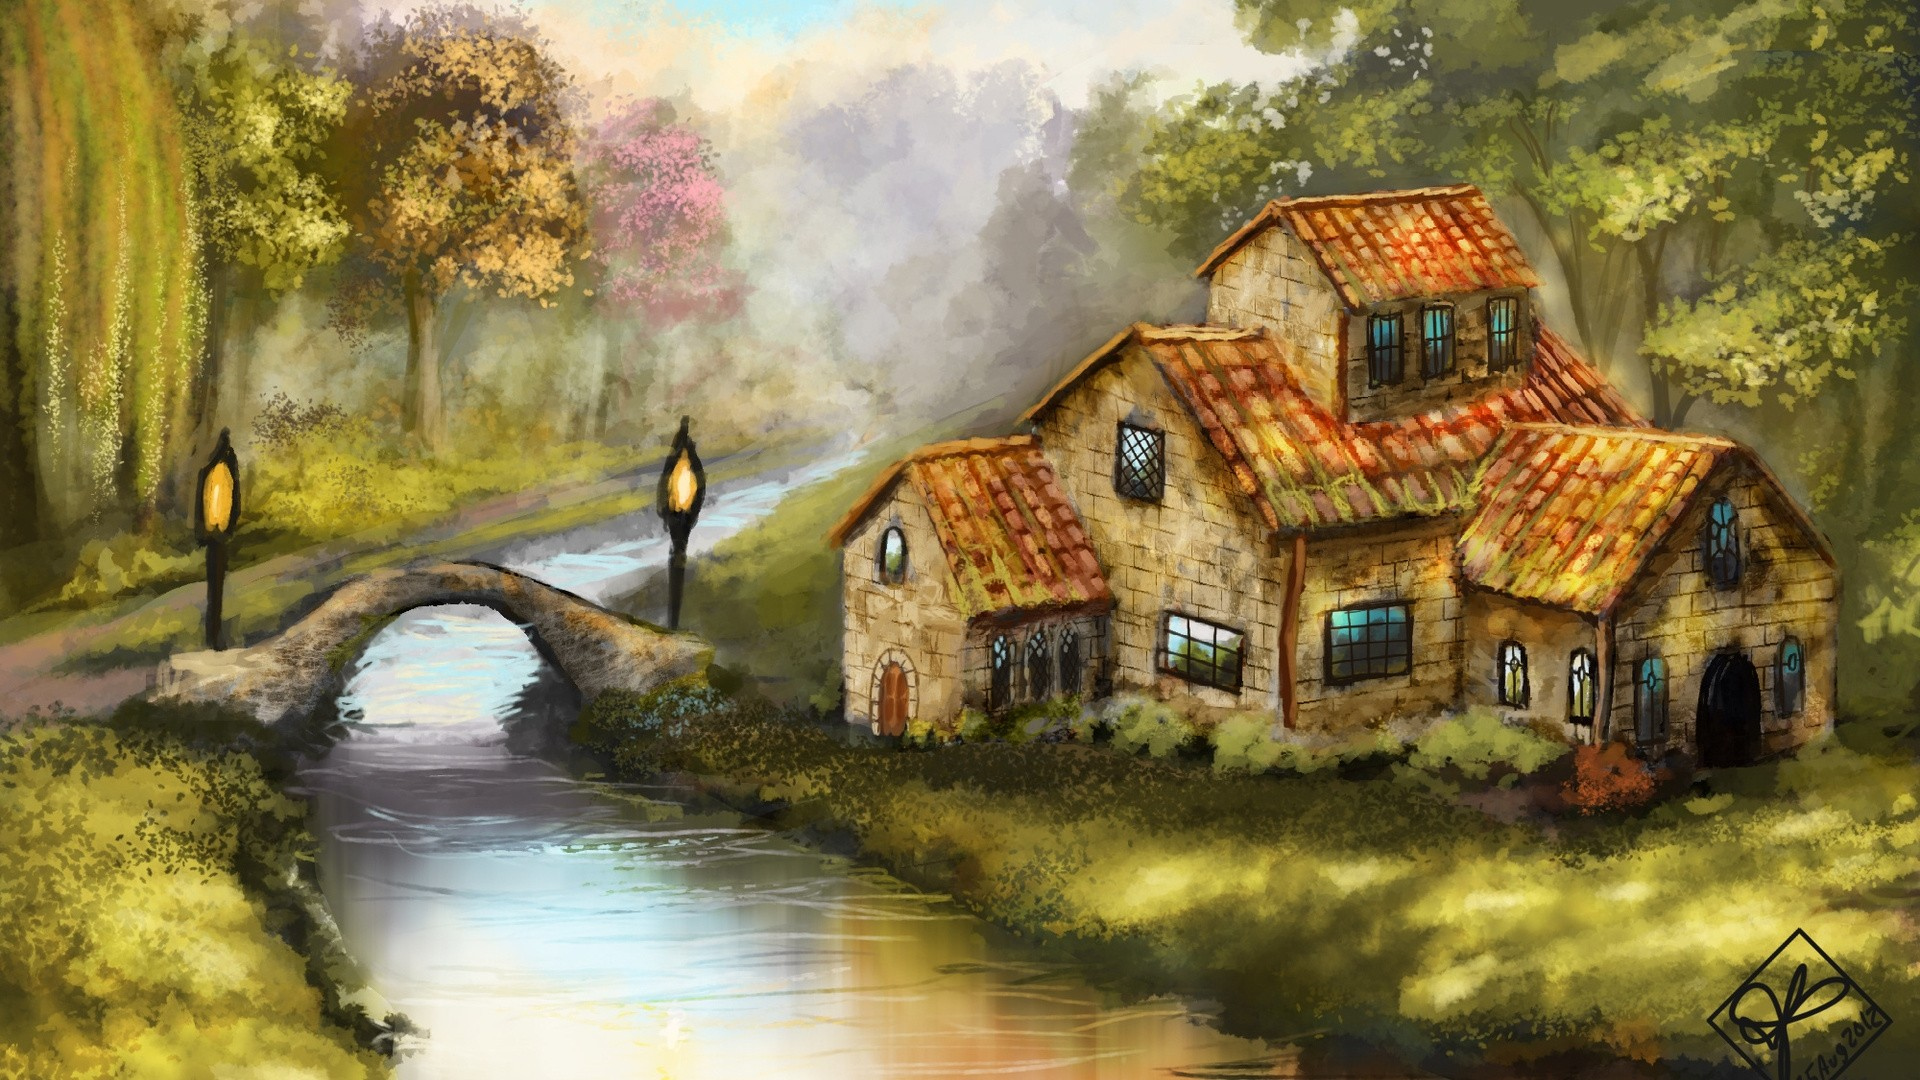 House By The River Art Wallpaper image hd